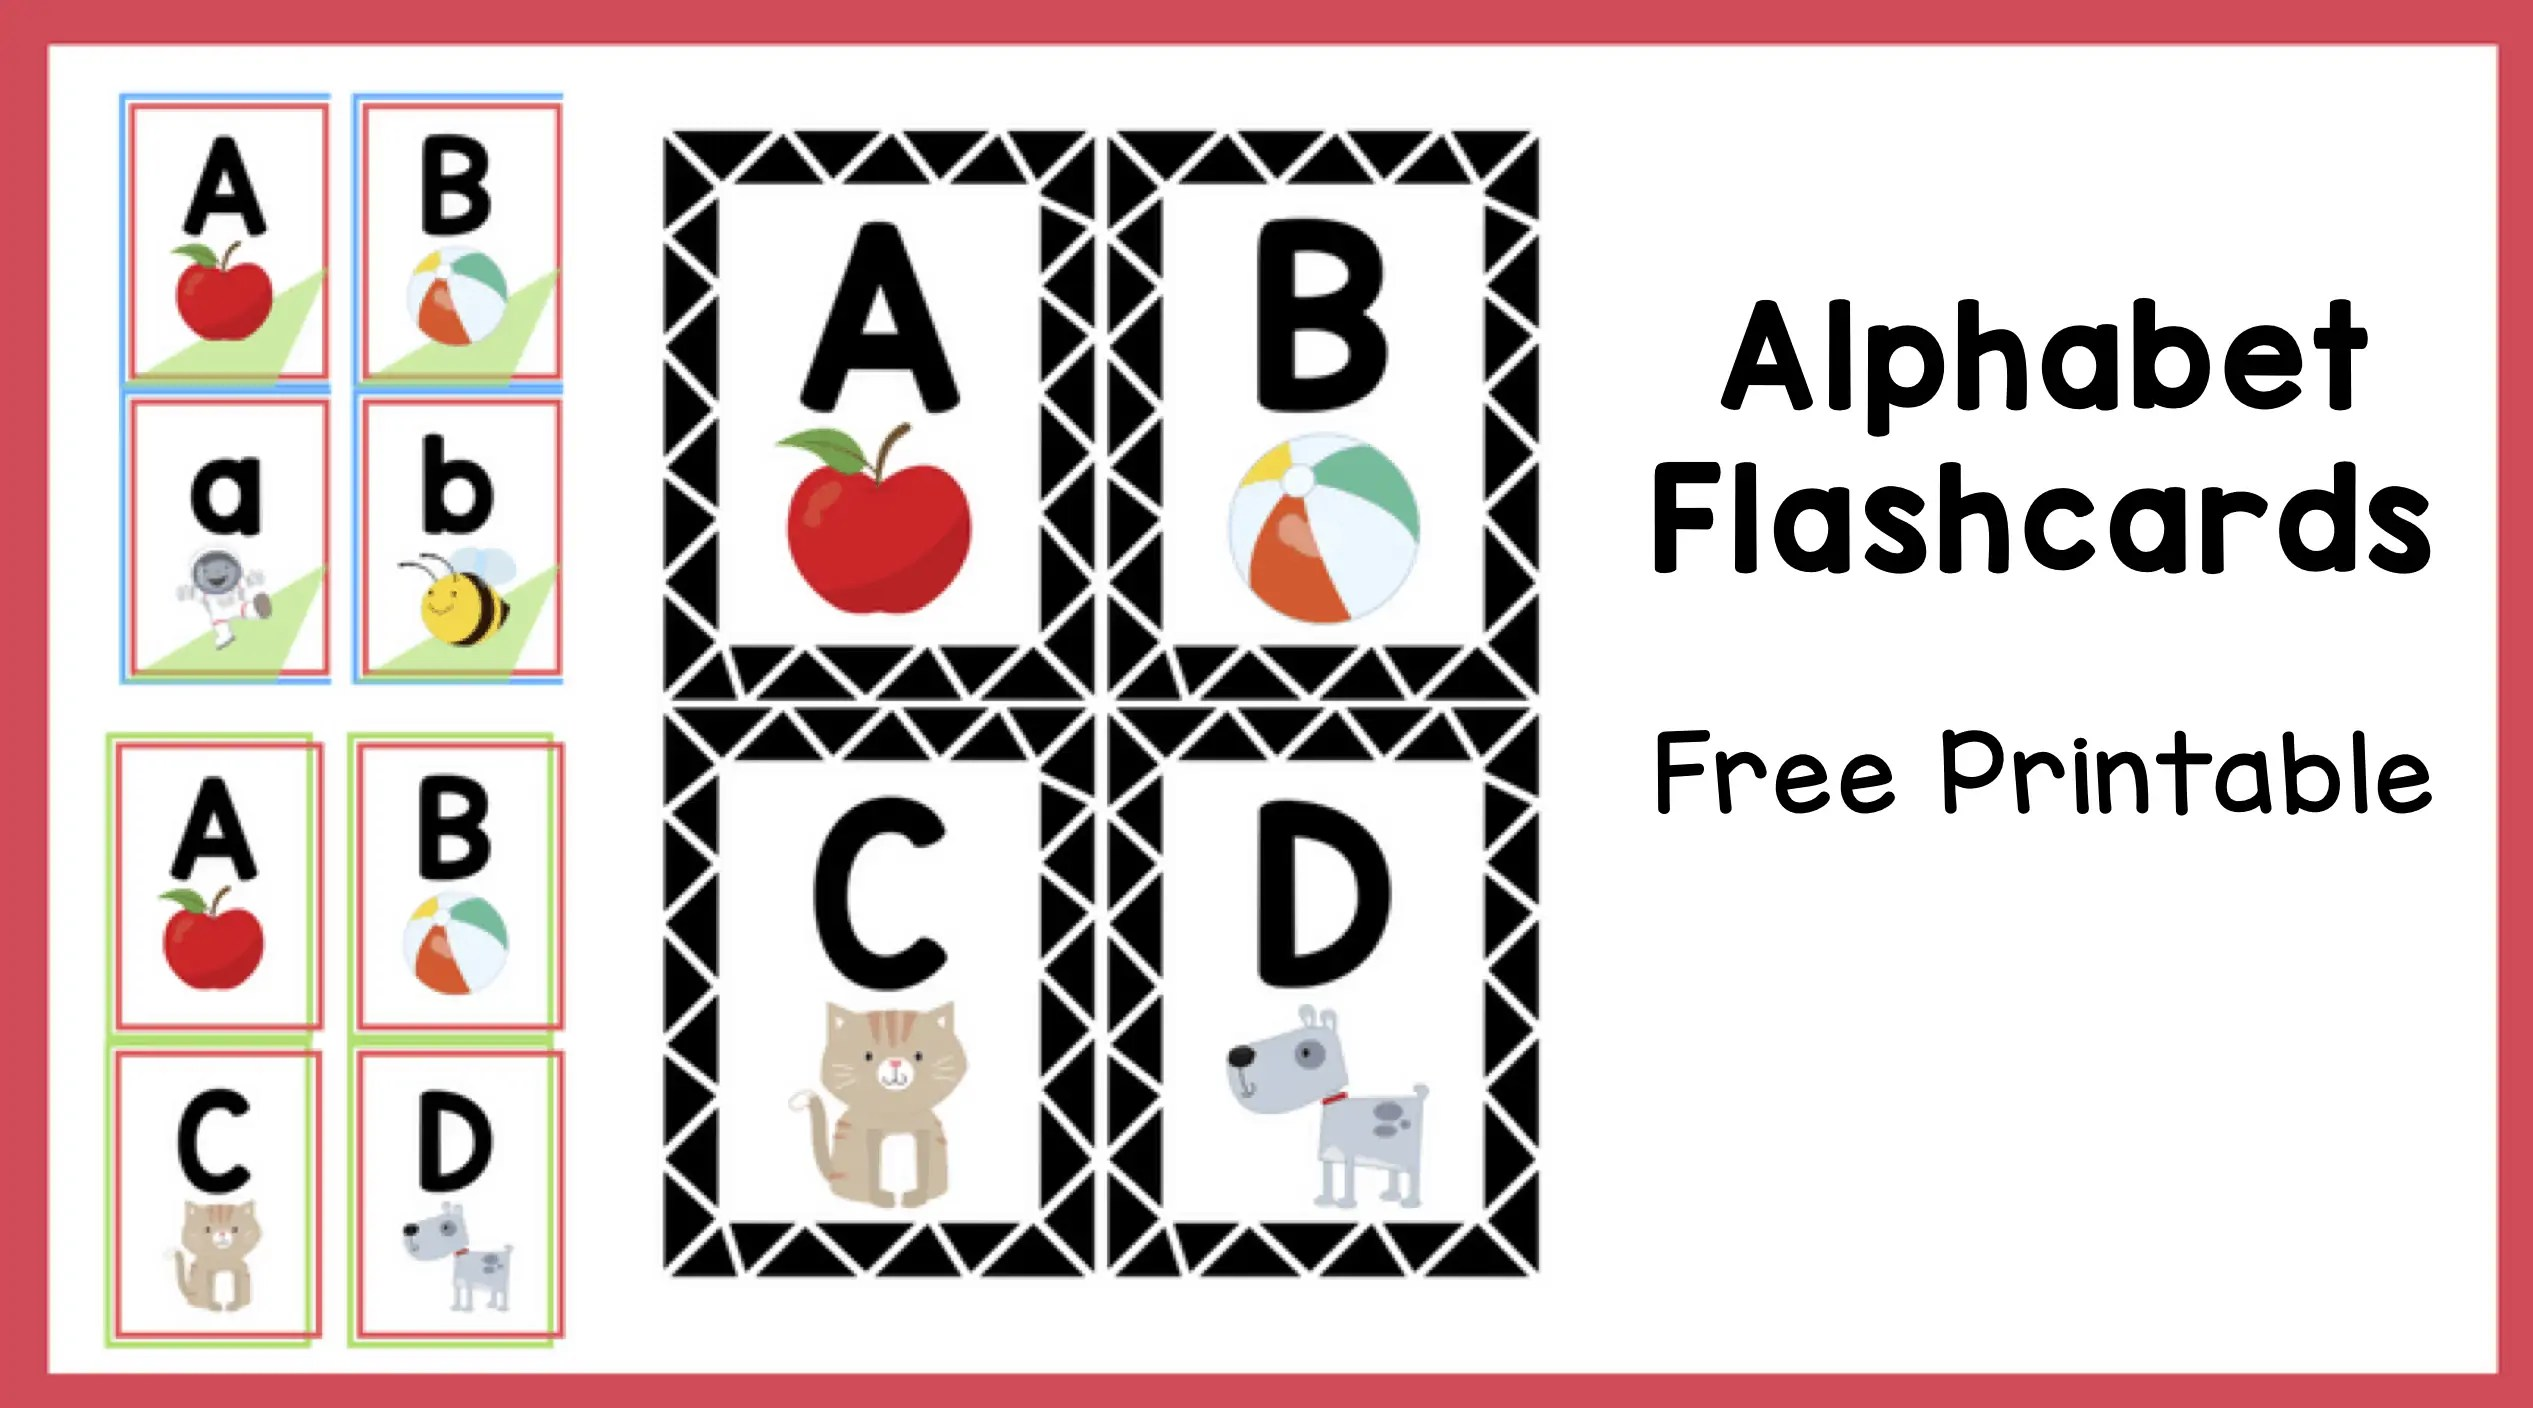 photograph about Free Printable Alphabet Flash Cards named Alphabet Flashcards Totally free Printable - The Training Aunt